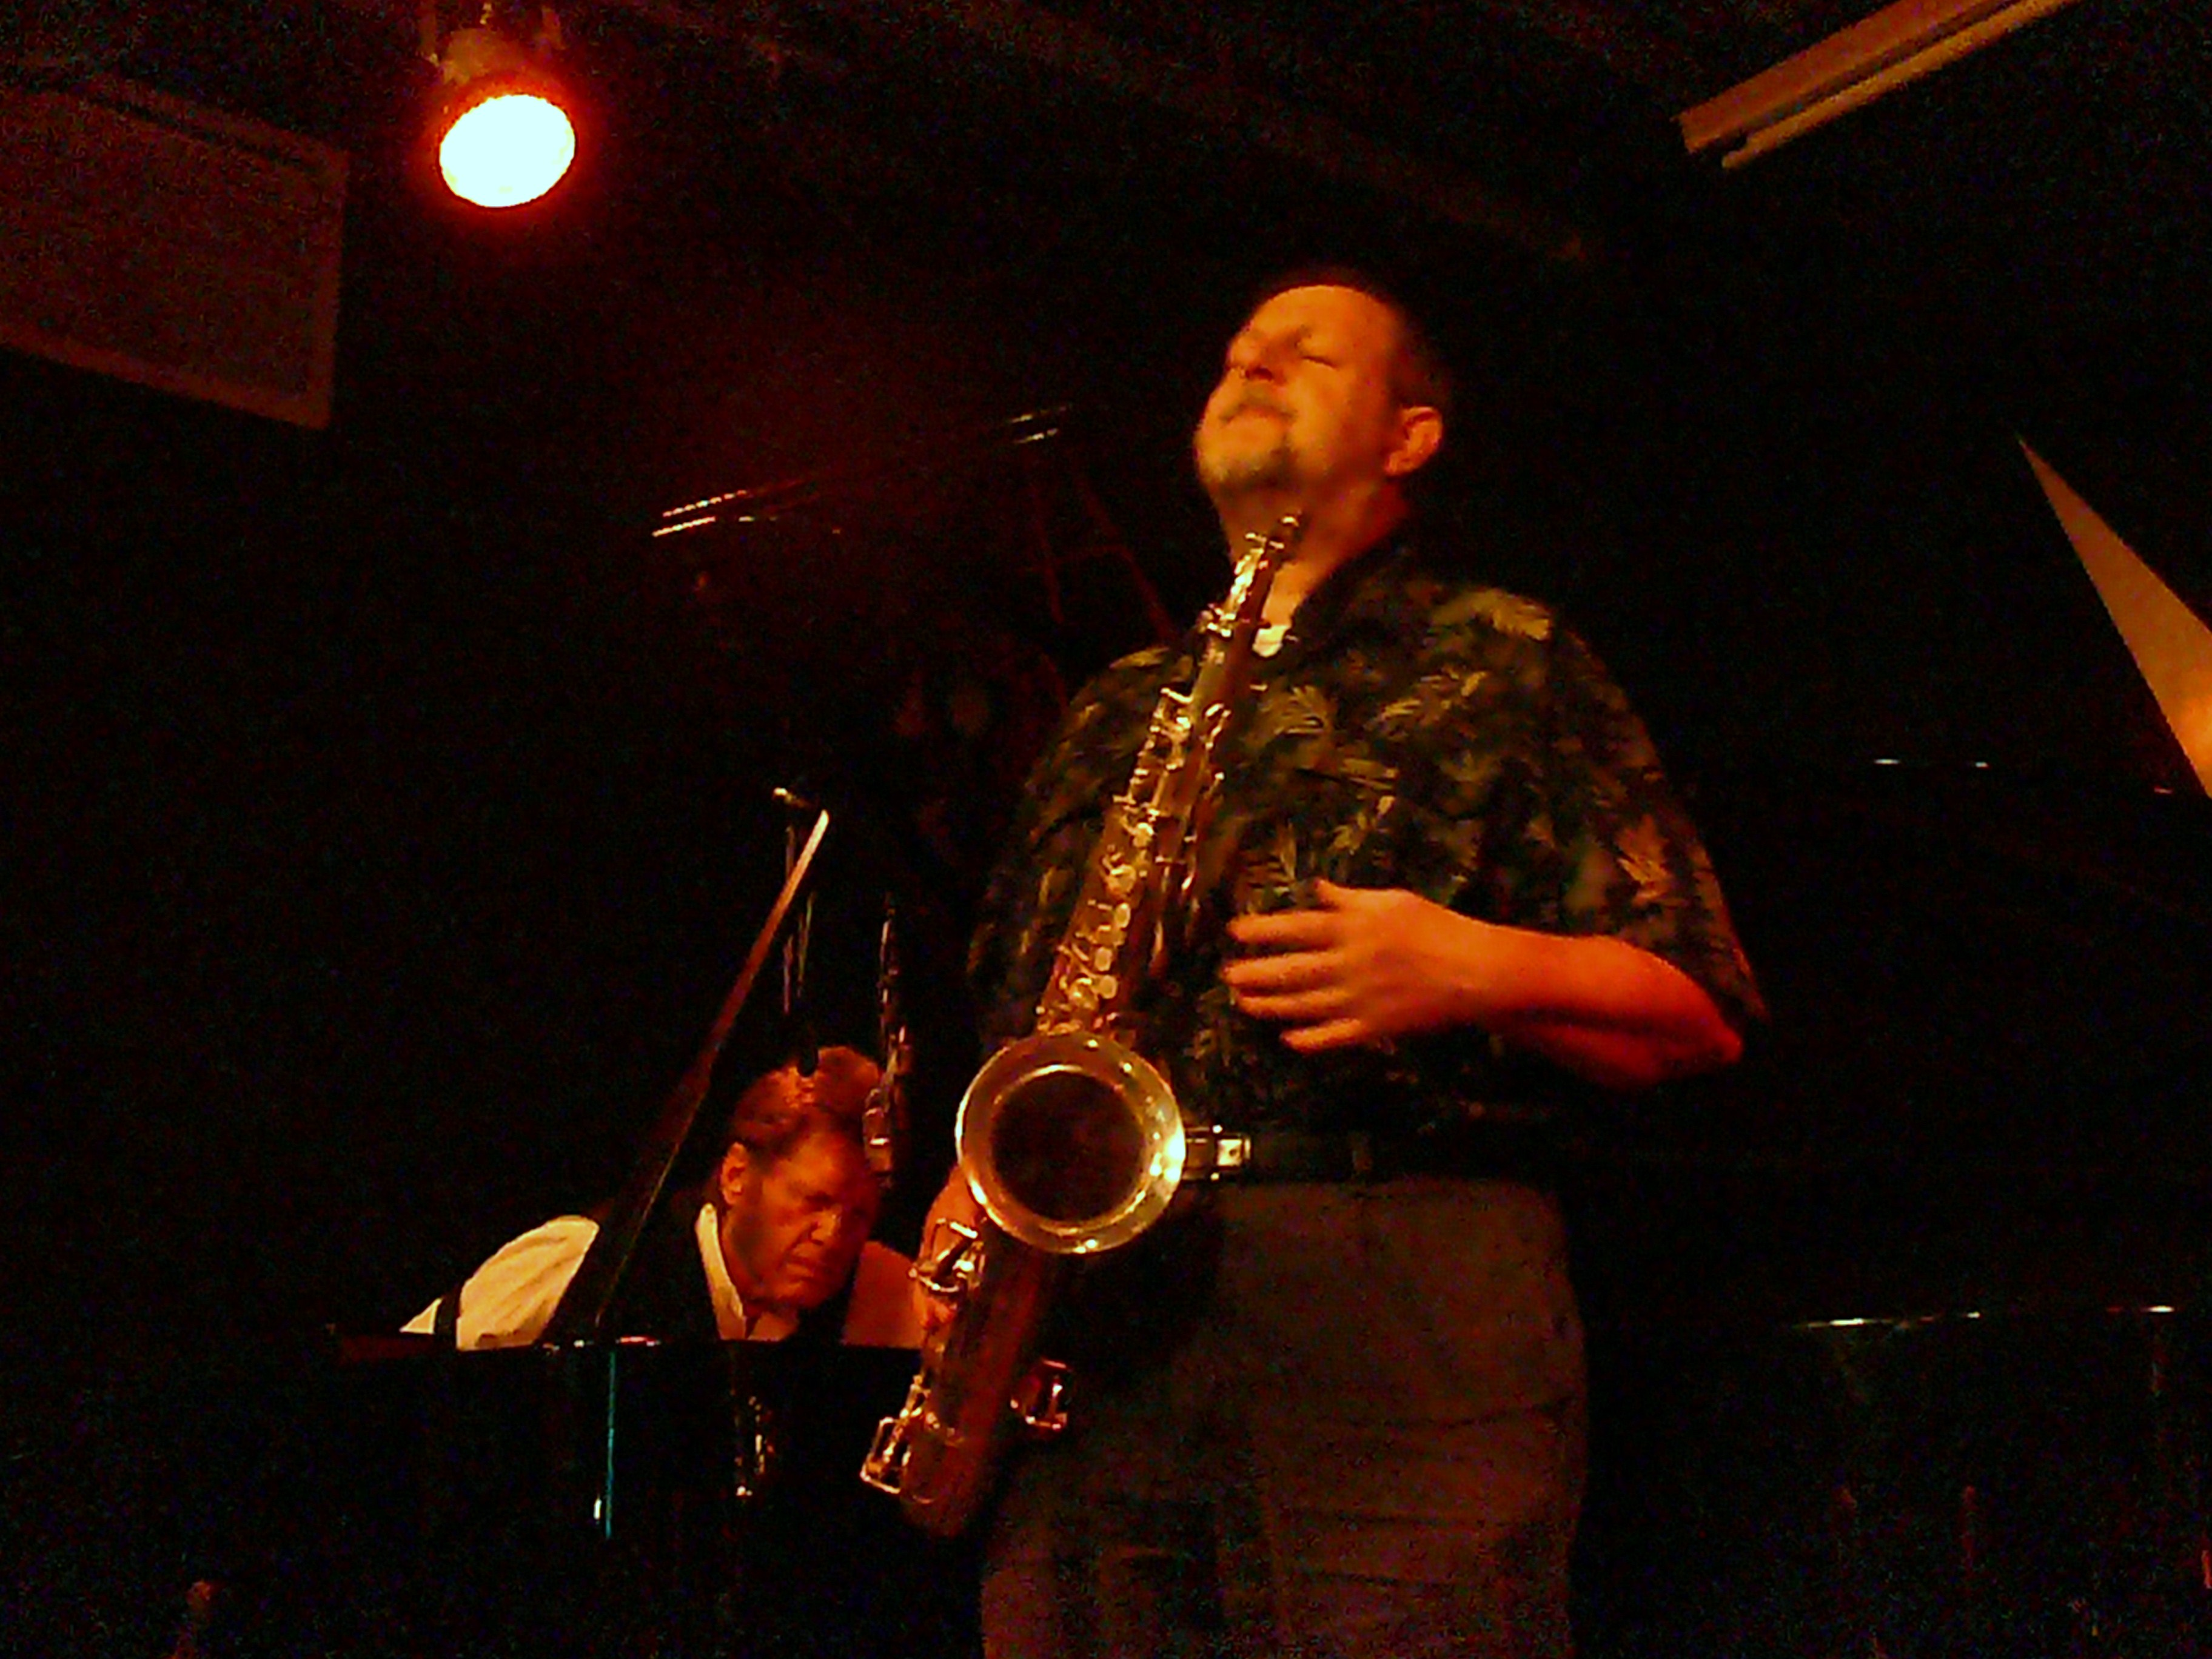 Keith Tippett and Paul Dunmall at the Vortex, London